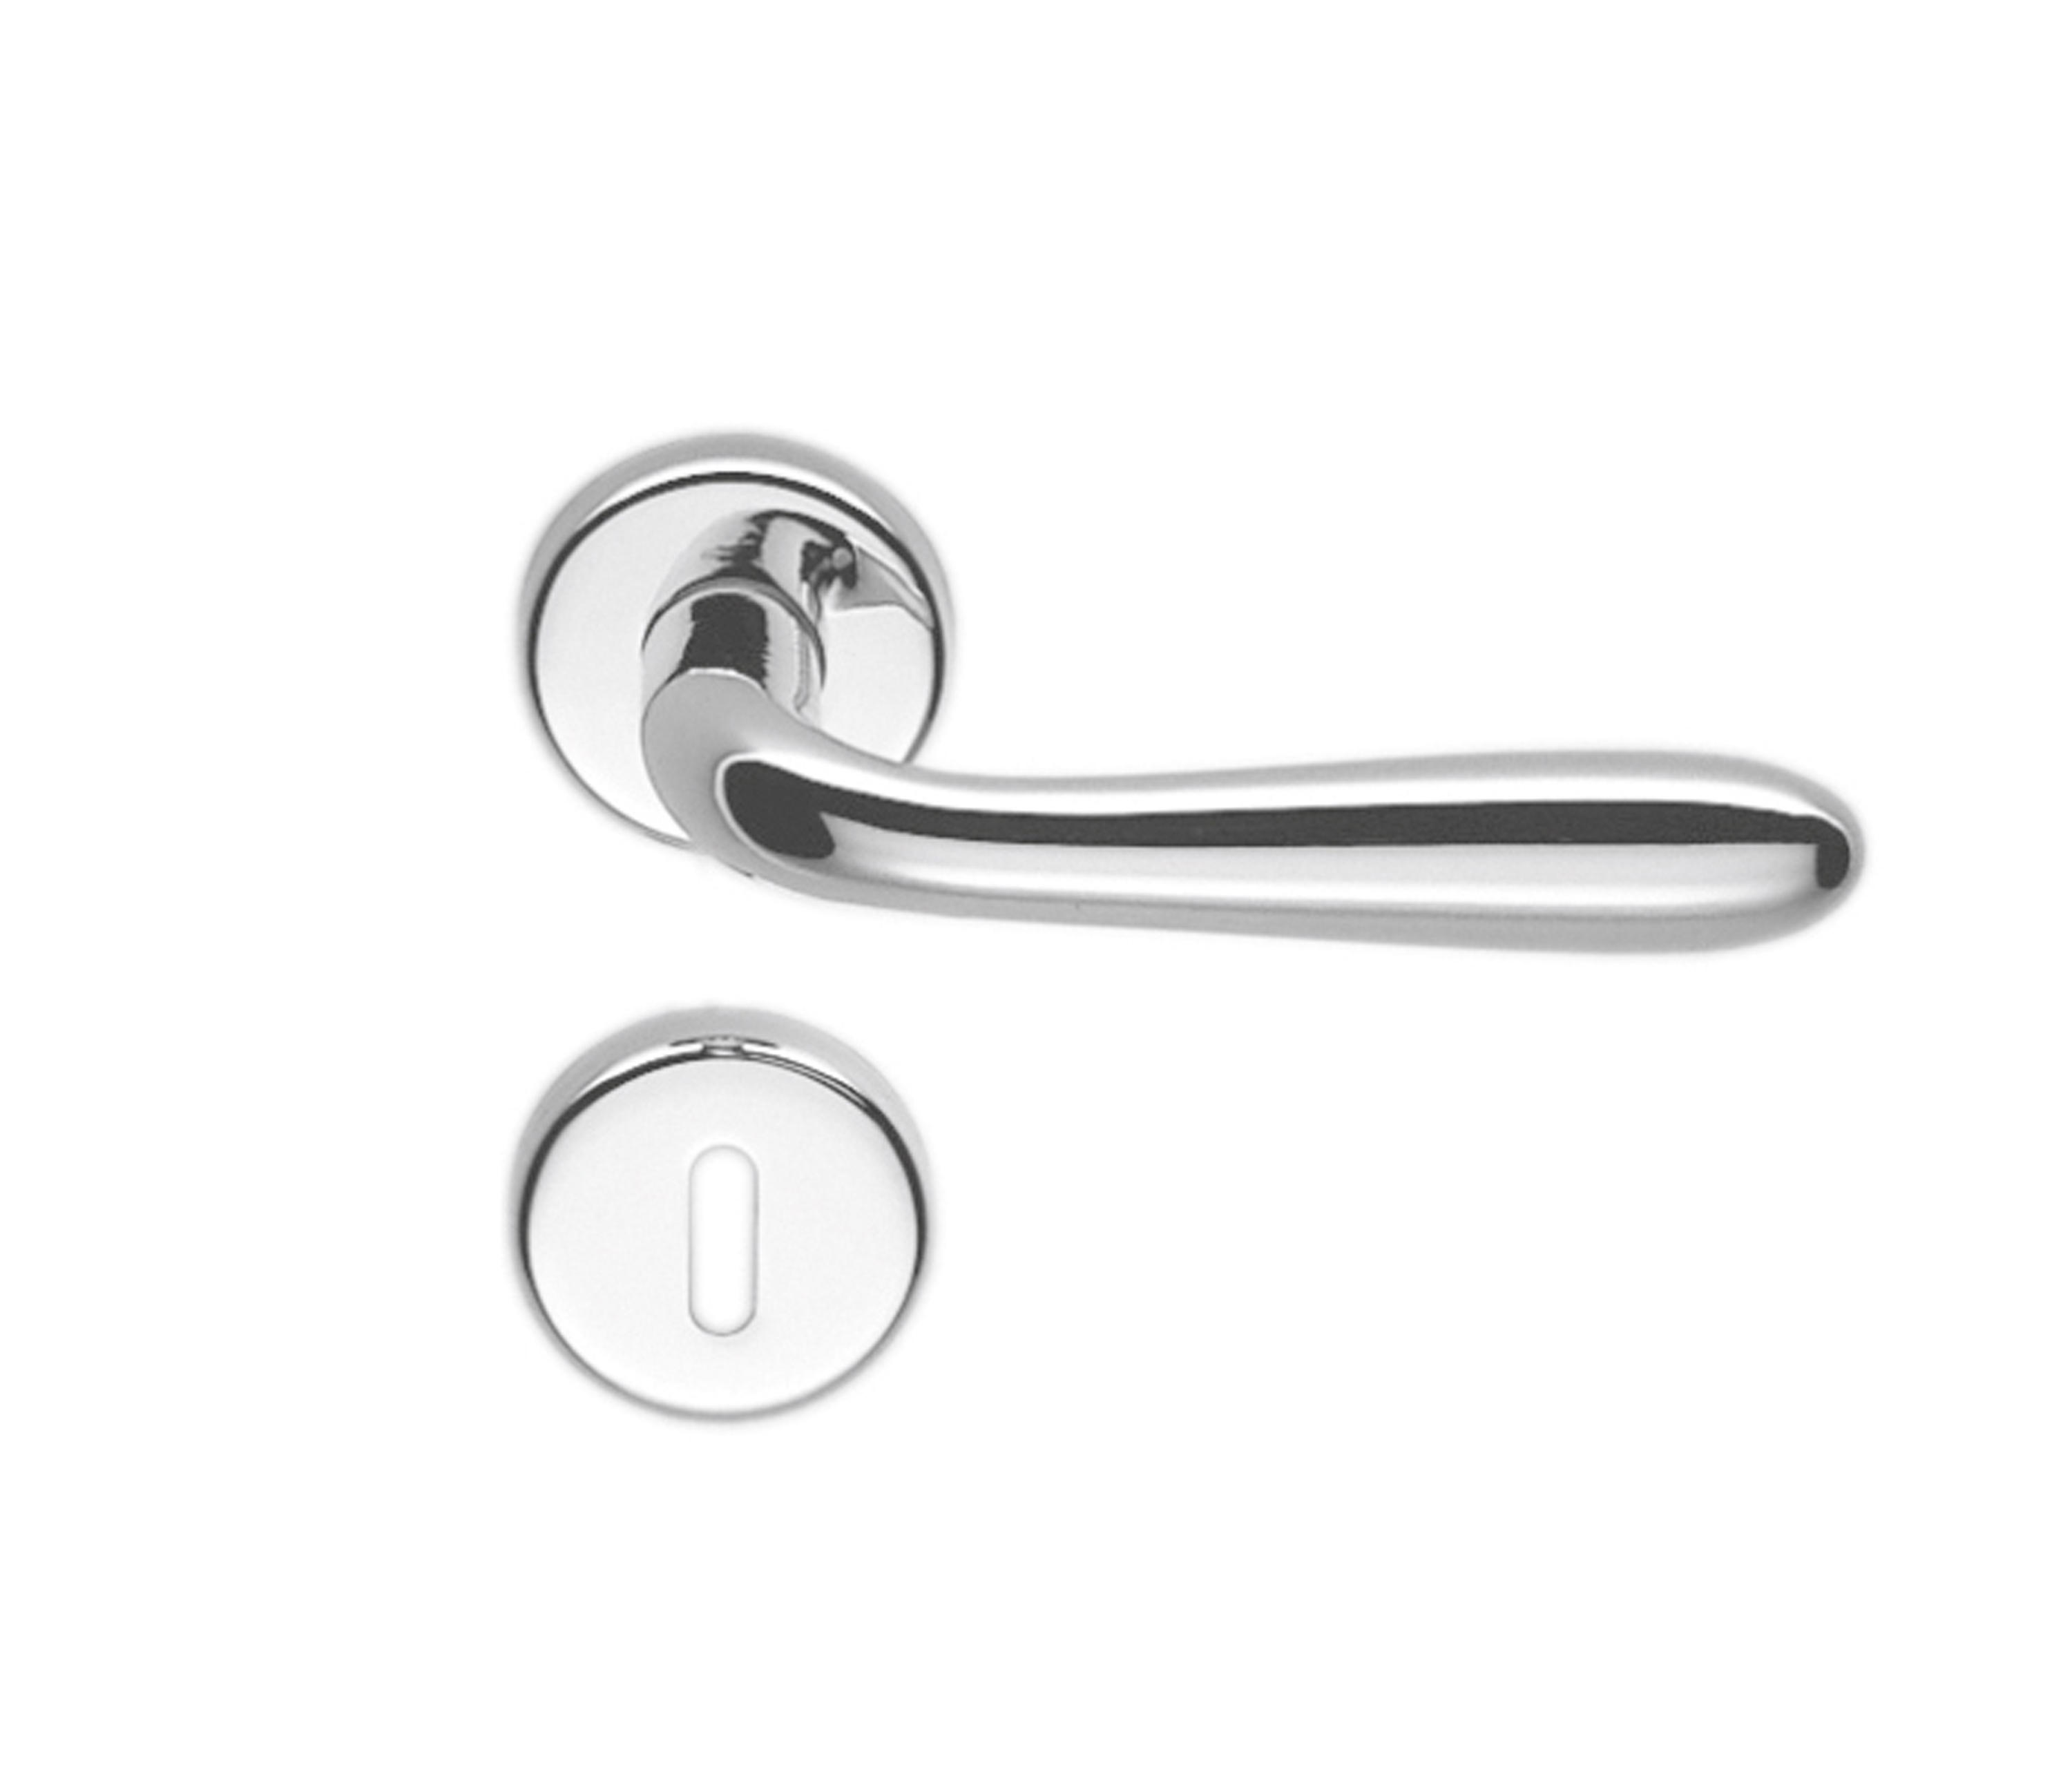 robot handle sets from colombo design architonic